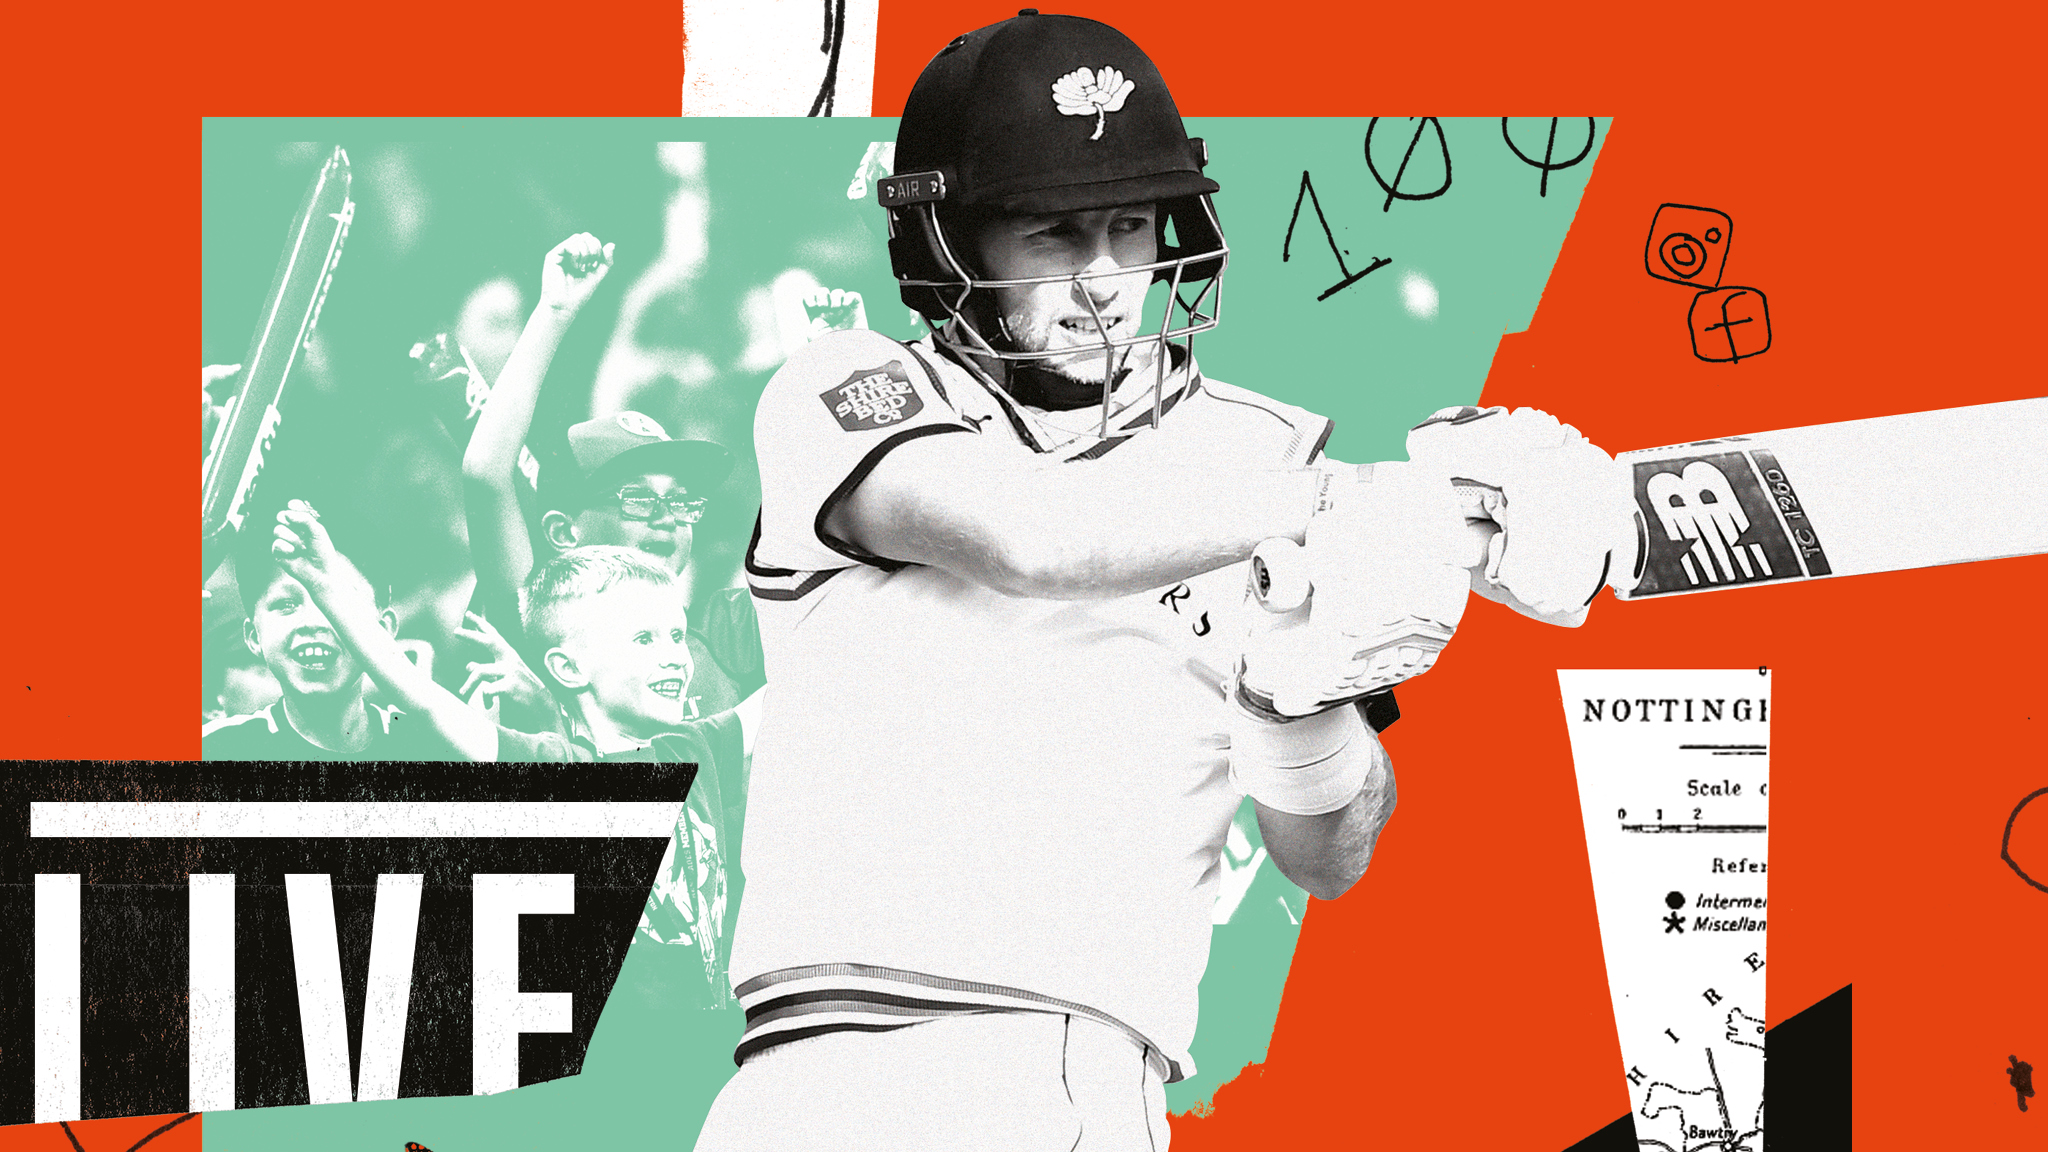 Can The Hundred save English cricket? | Financial Times